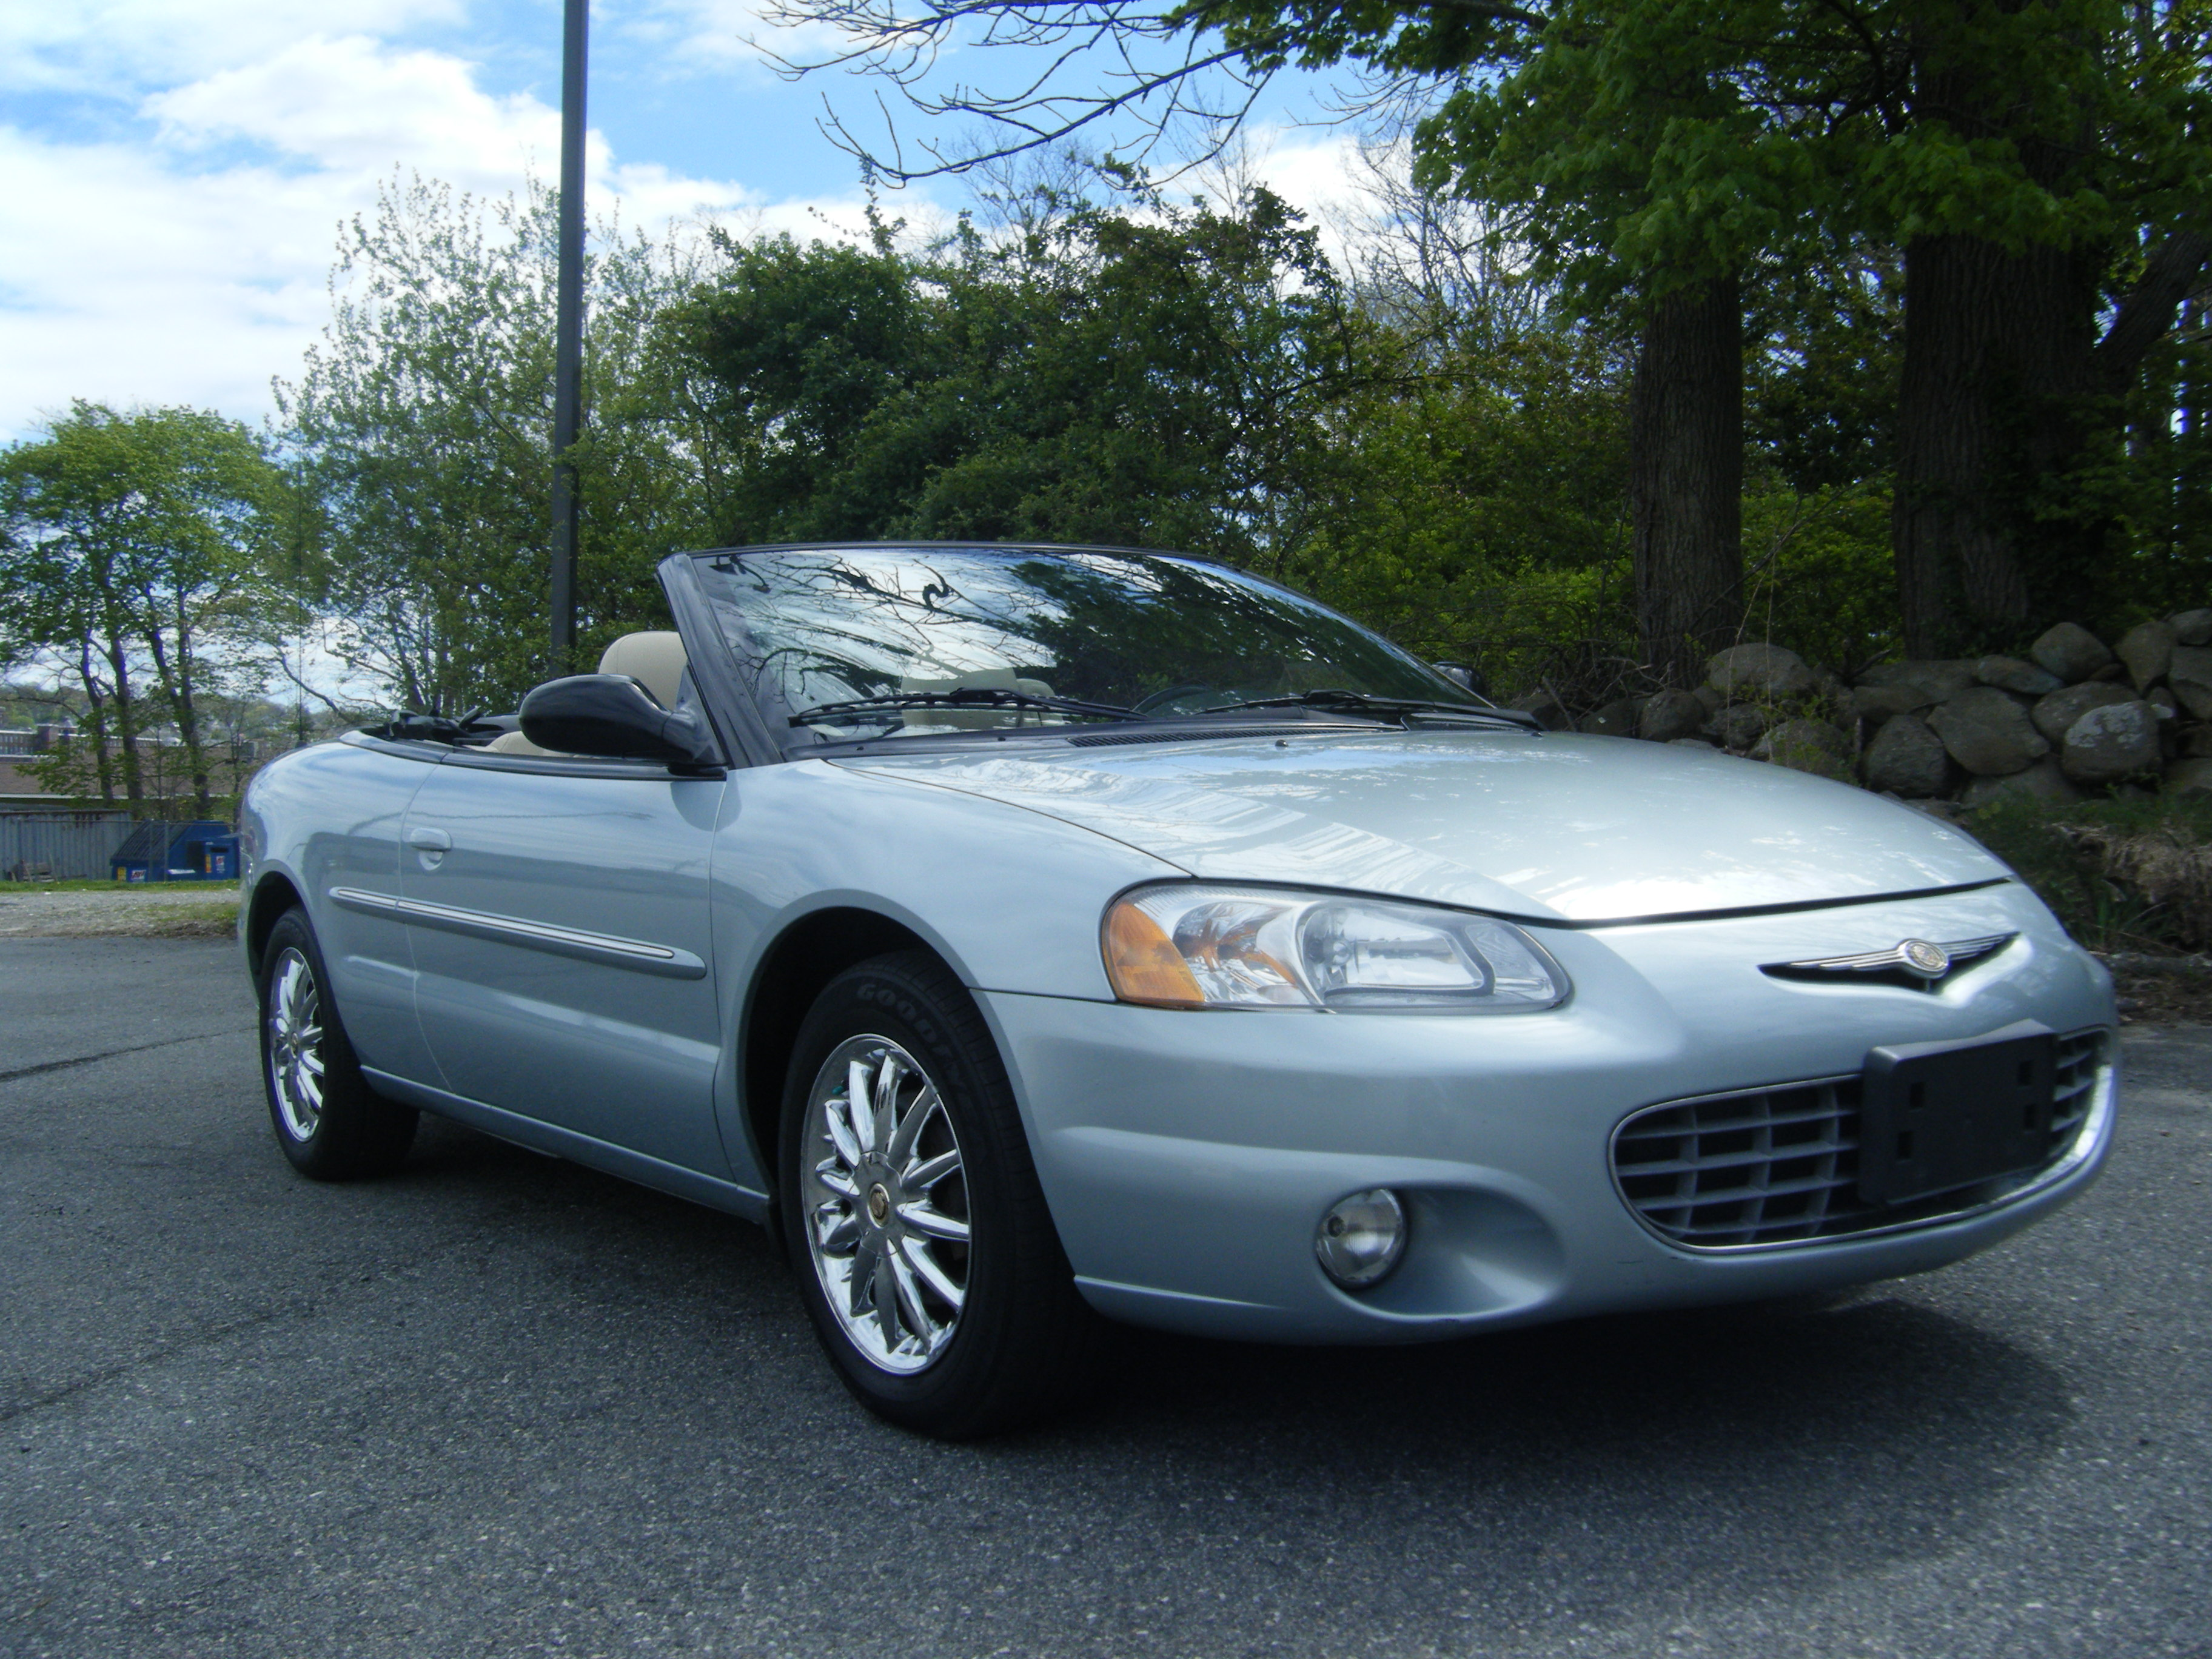 2002 chrysler sebring limited convertible pictures picture of 2002. Cars Review. Best American Auto & Cars Review